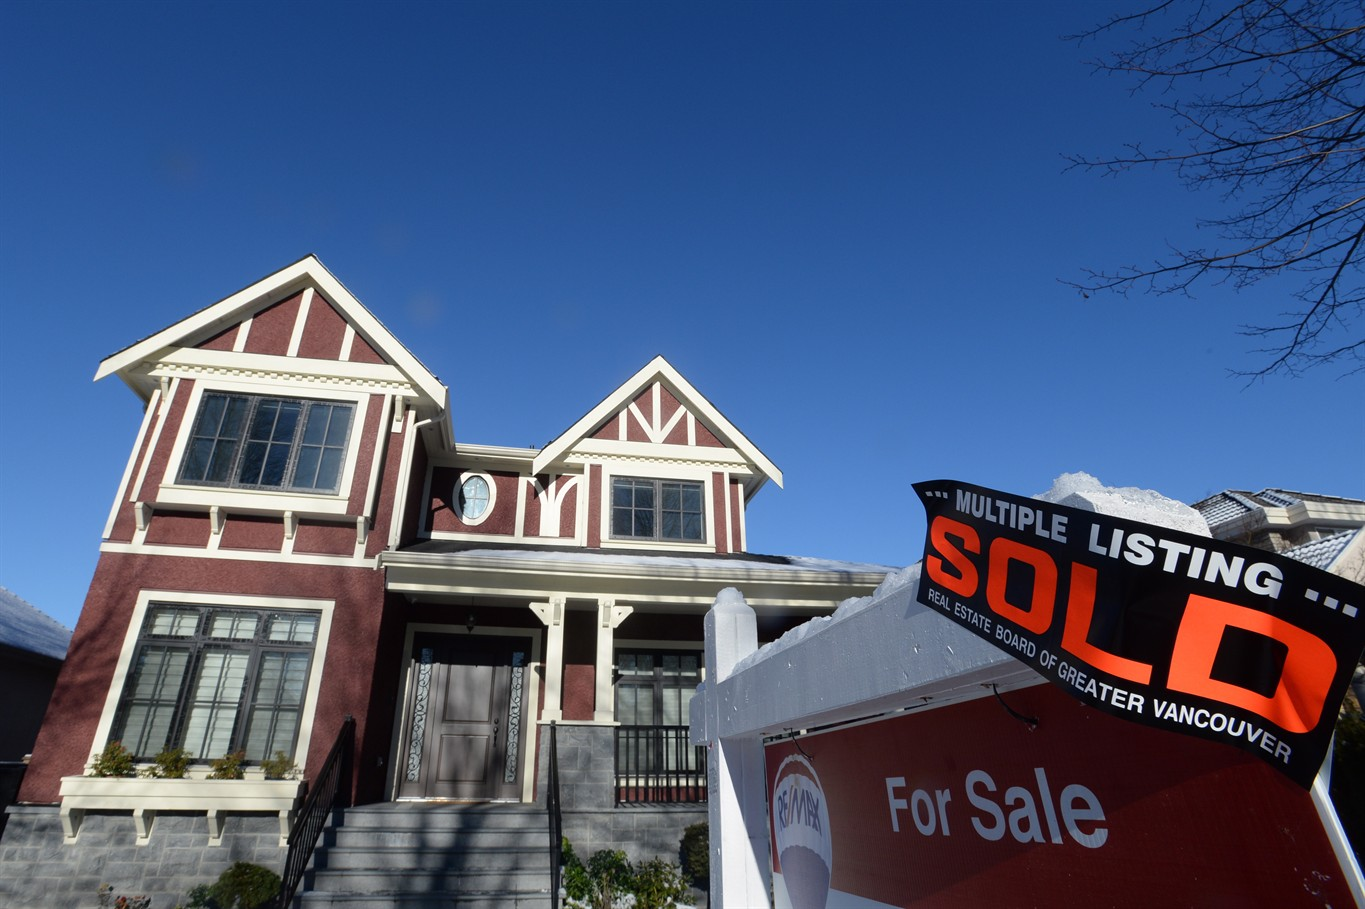 Vancouver real estate 'could very well be at the bottom of the market', expert says